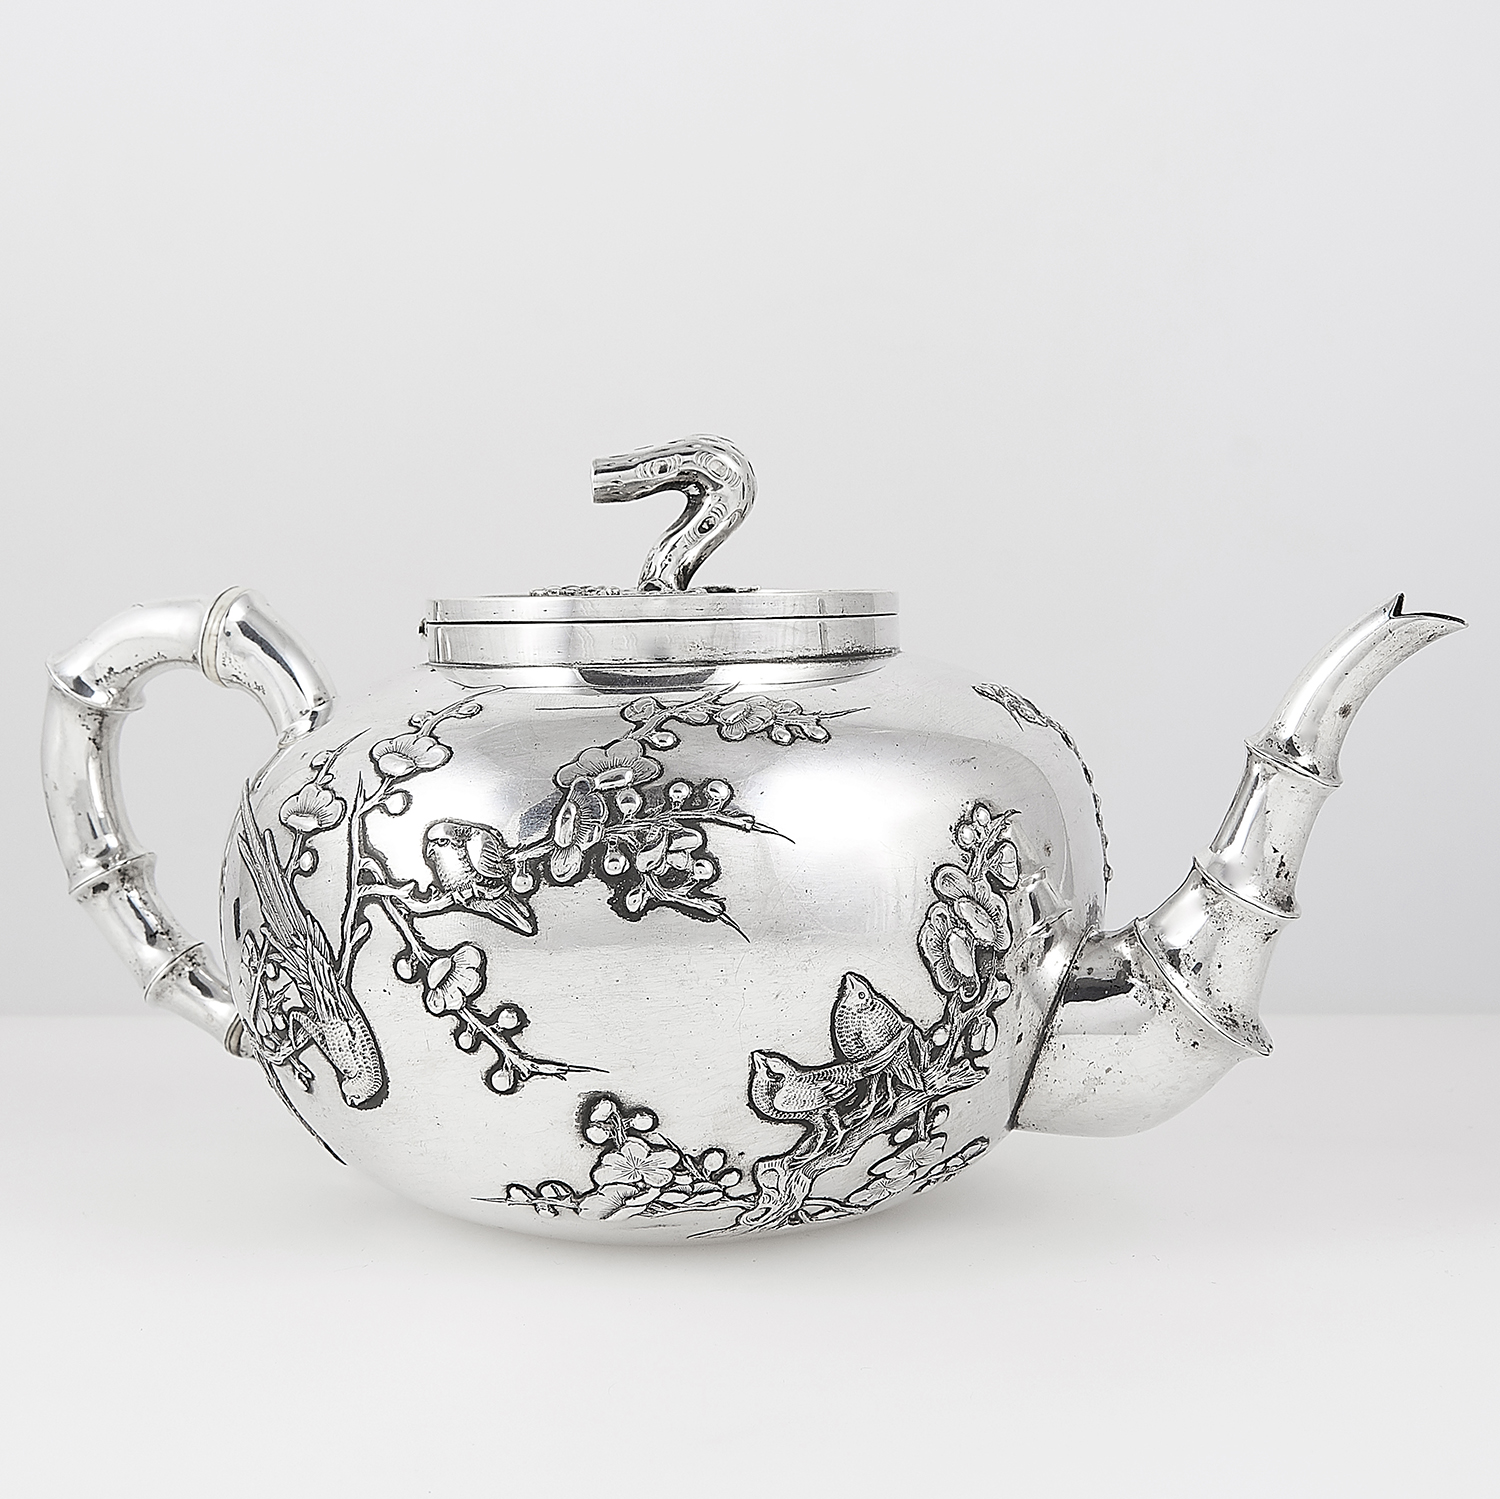 ANTIQUE CHINESE EXPORT SILVER TEAPOT AND SUGAR BOWL, HUNG CHONG CIRCA 1900 the rounded bodies with